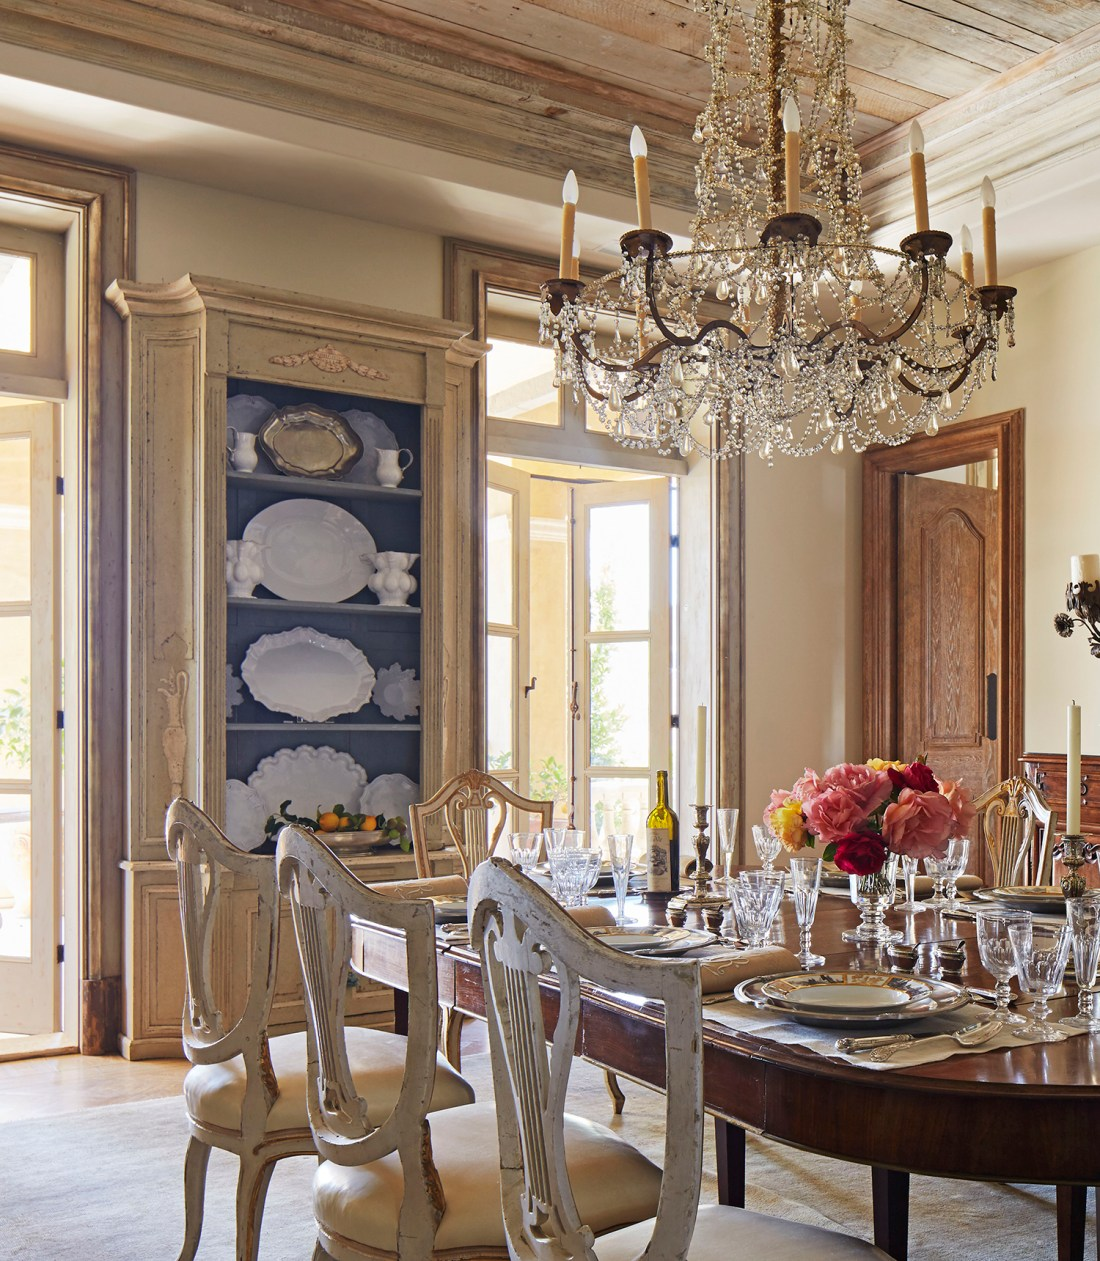 Dining Room Ideas Blog Dining Room Ideas Gallery Of Stunning Dining Room Pictures